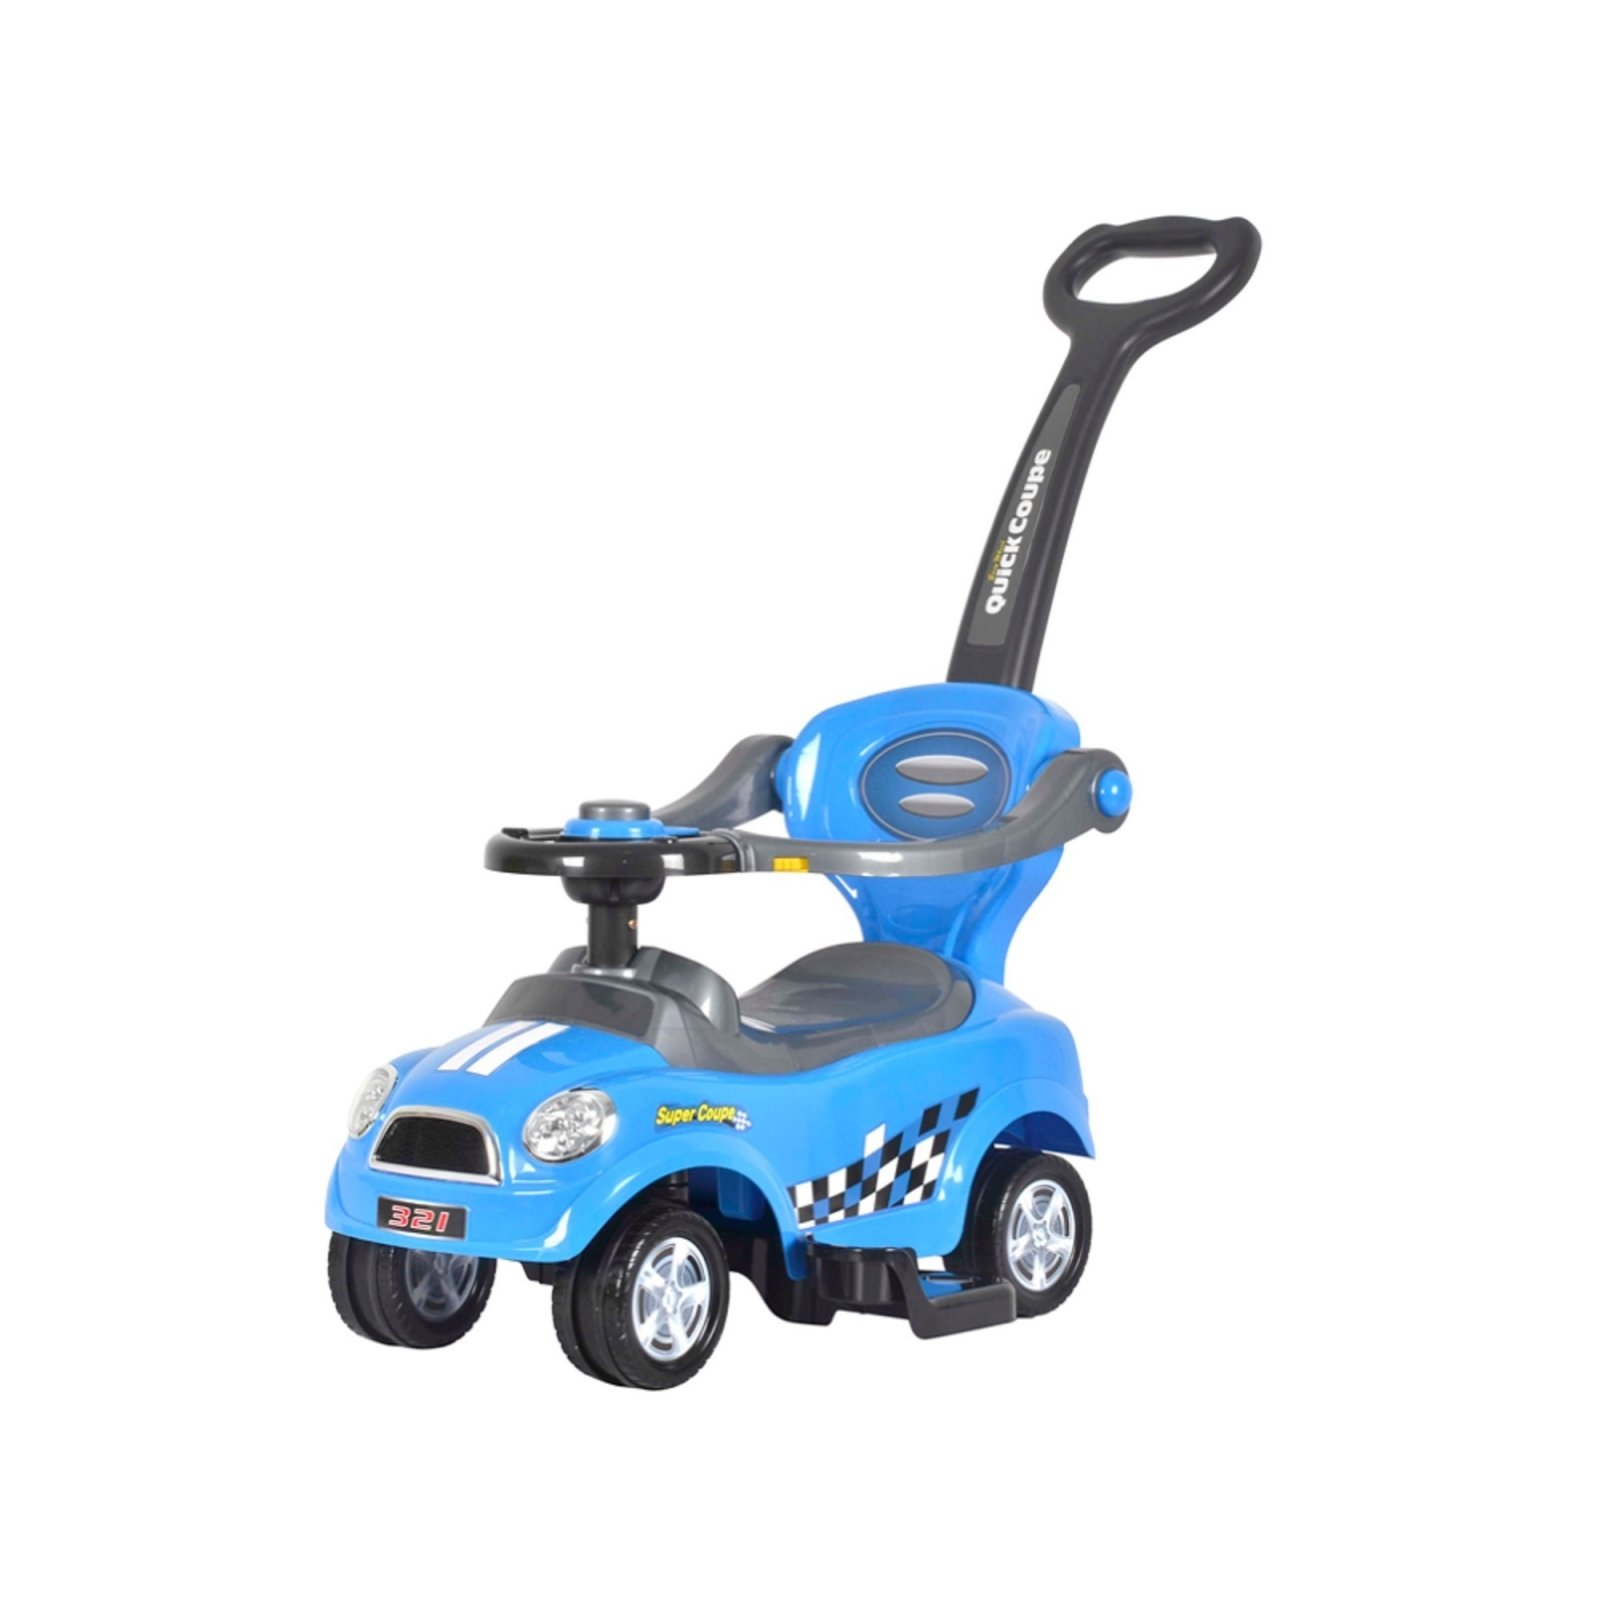 Mini 3 in 1 Stroller, Push Car, Ride On Car Blue